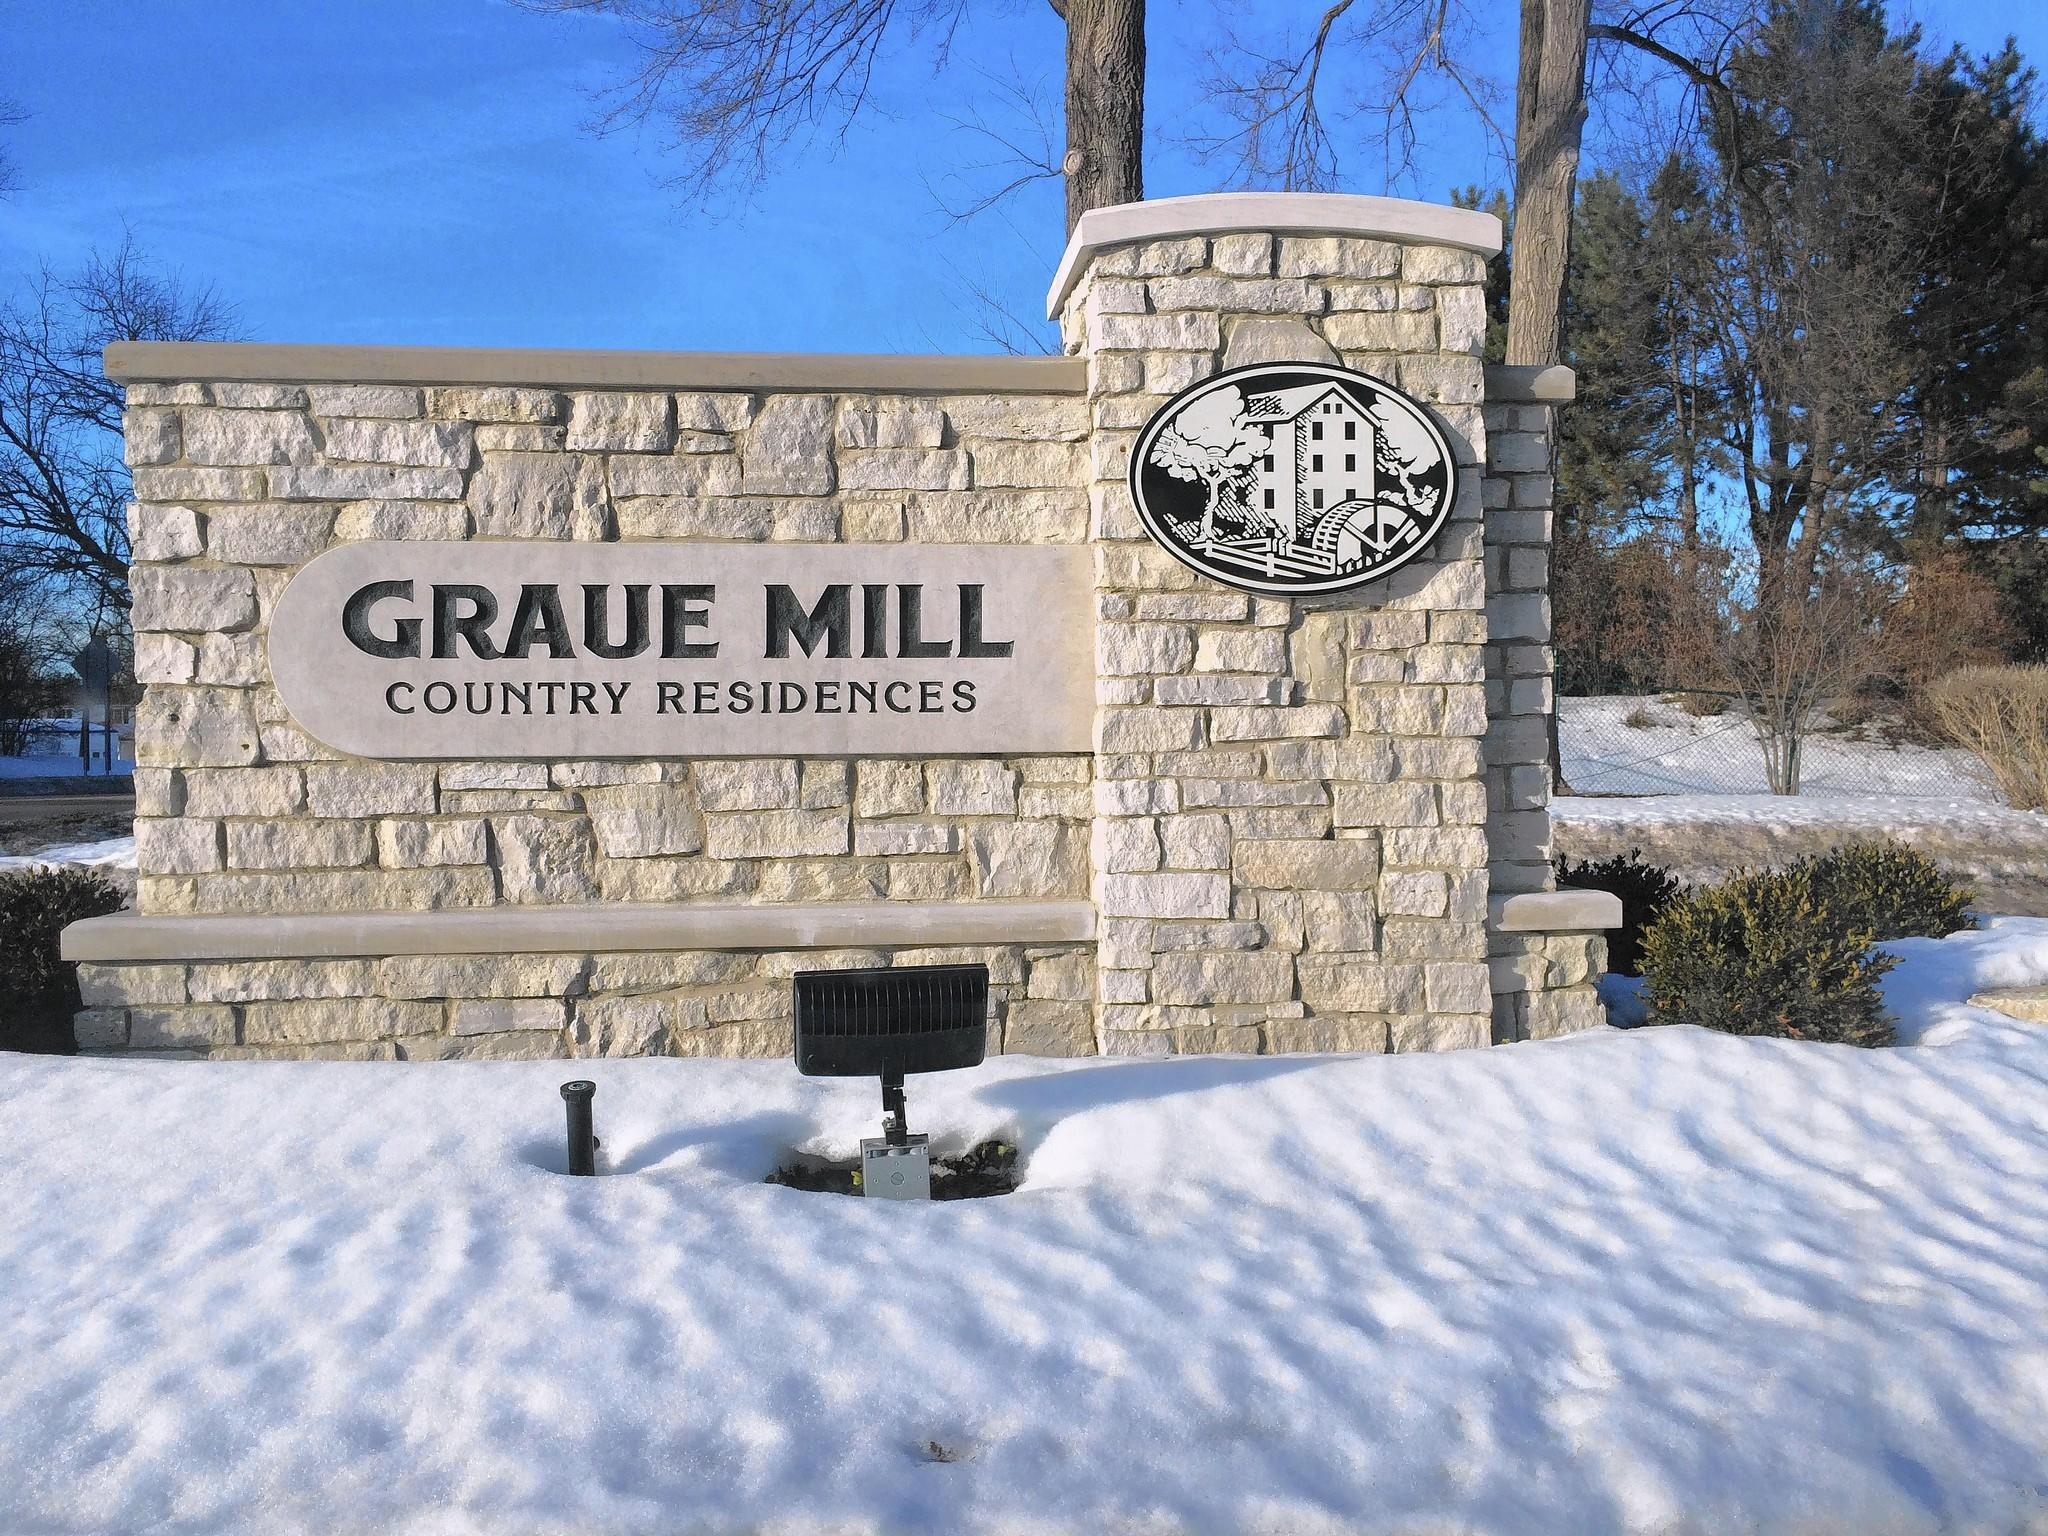 The Graue Mill Country Residences has been selected for a $2.57 million grant to pay for flood control measures.